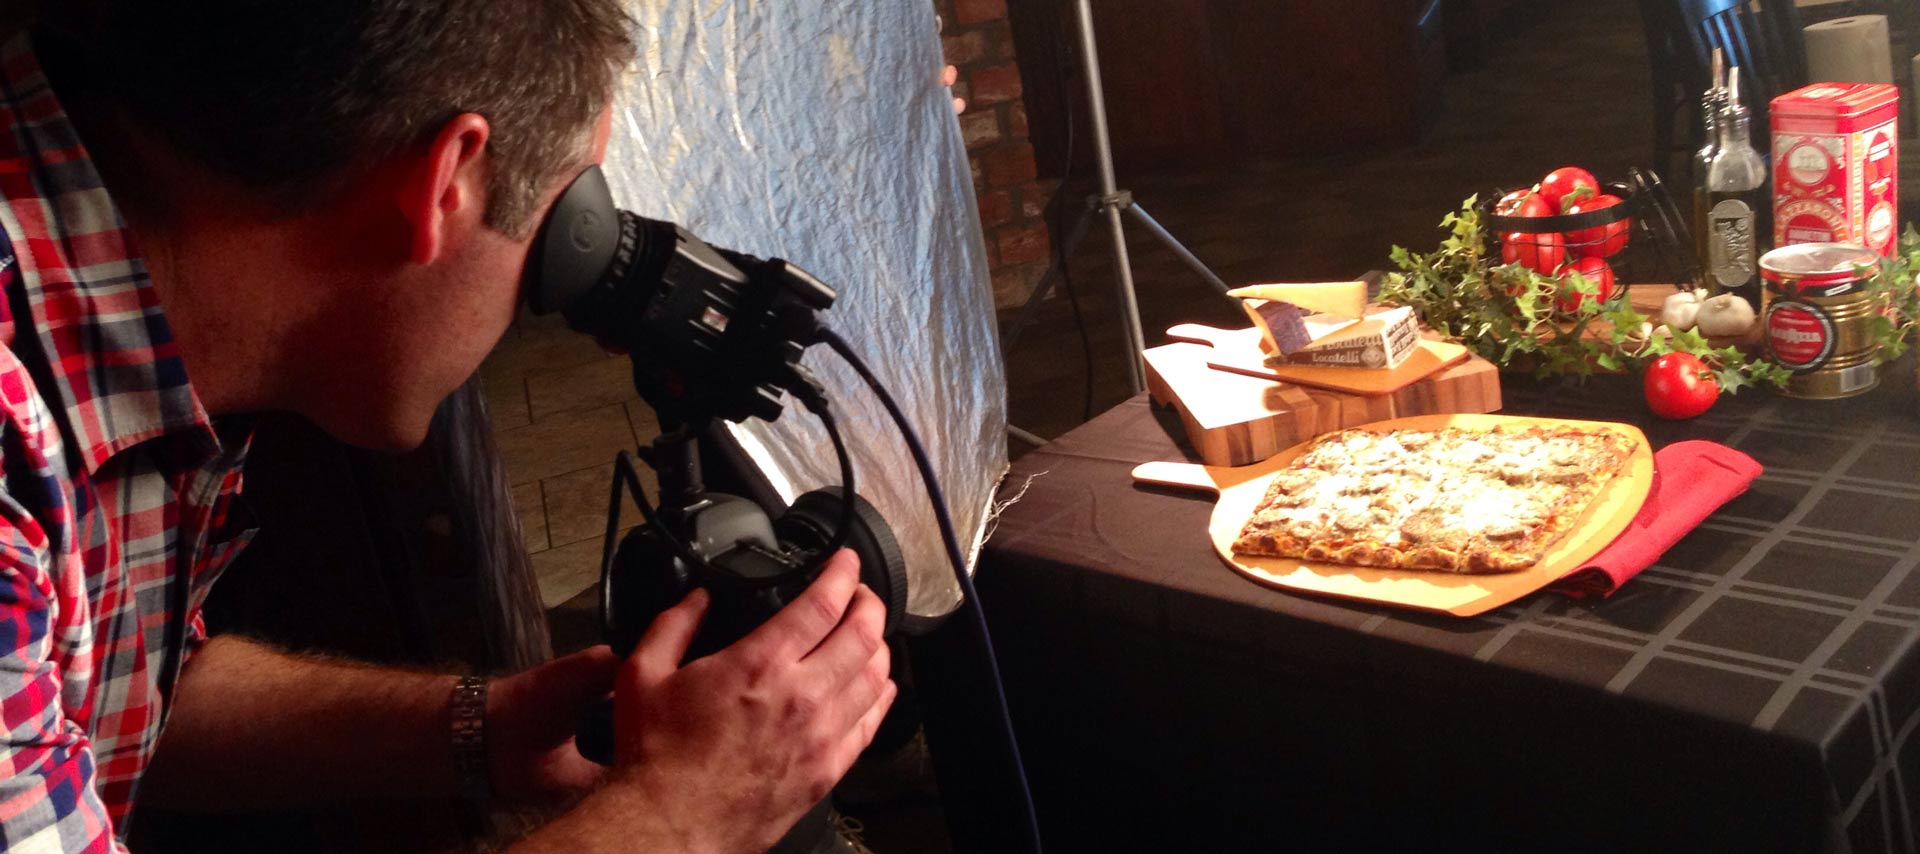 Food Photography & Video That Stands Out – In A Good Way